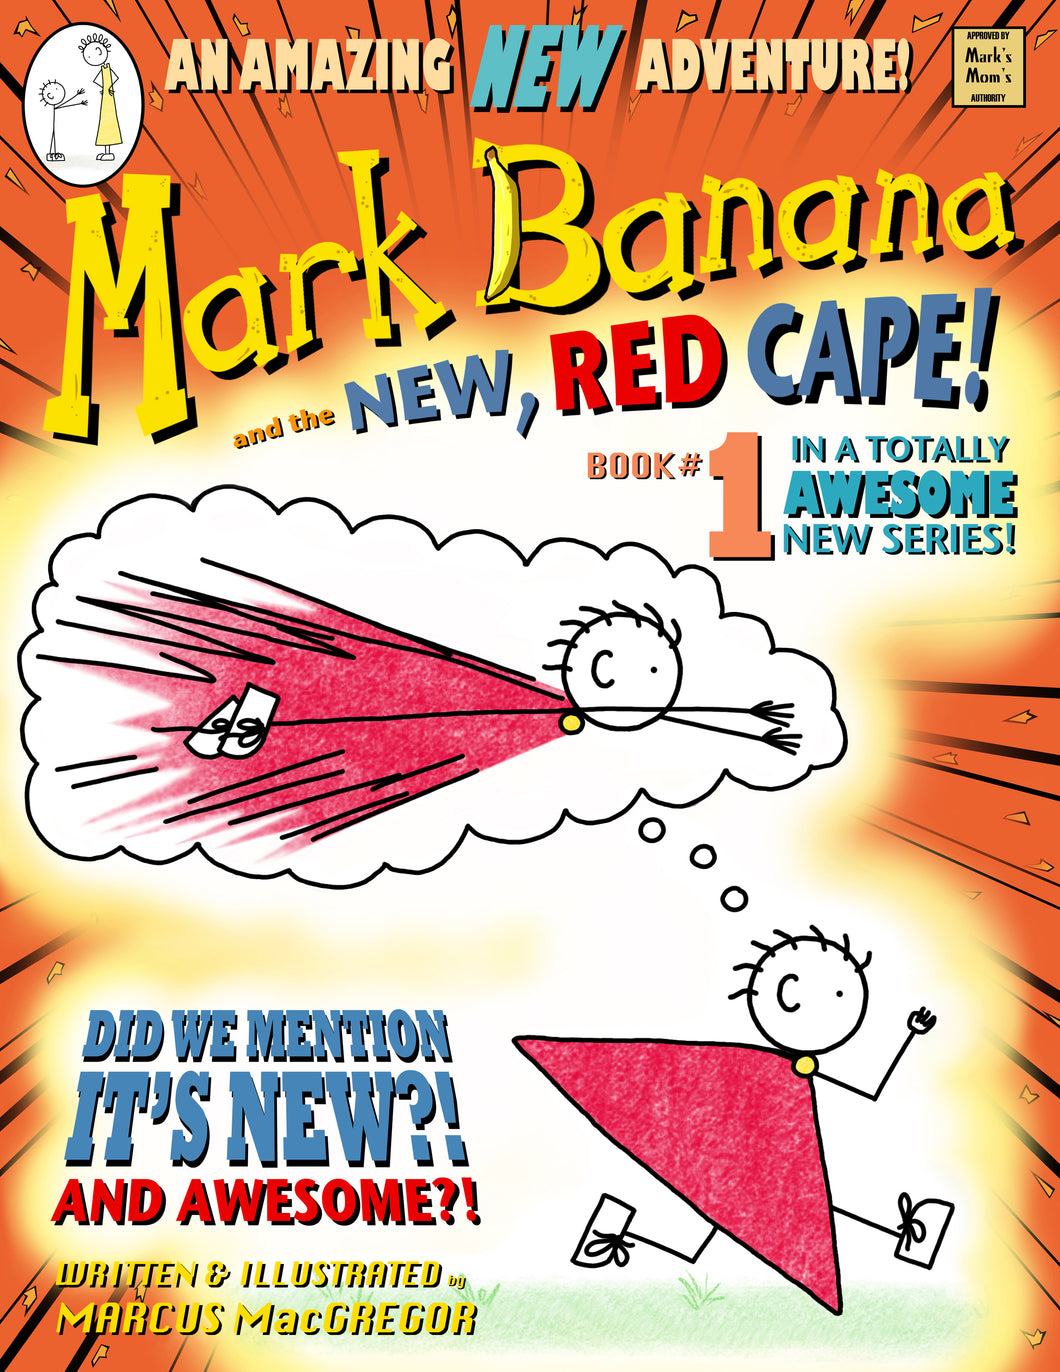 Mark Banana and the New, Red Cape!